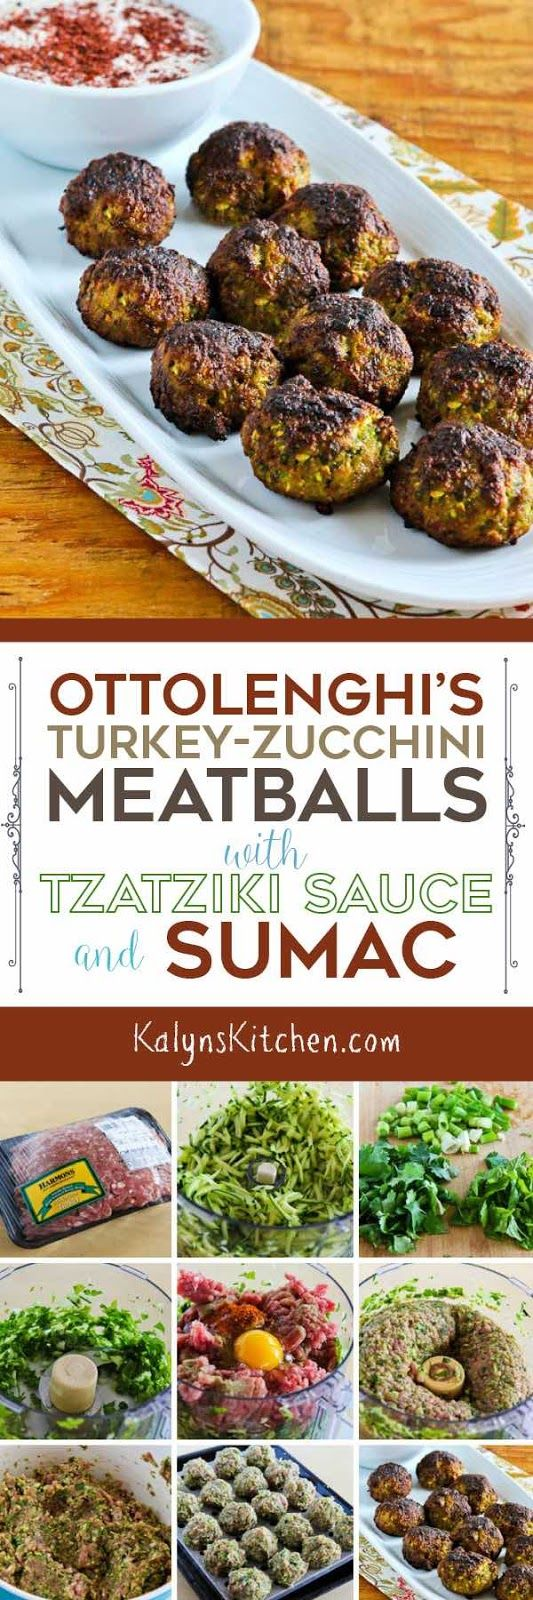 Ottolenghi's Turkey-Zucchini Meatballs with Tzatziki and Sumac use grated zucchini and herbs in deliciious meatballs that are low-carb Keto, low-glycemic, gluten-free, and South Beach Diet friendly. [found on KalynsKitchen.com]